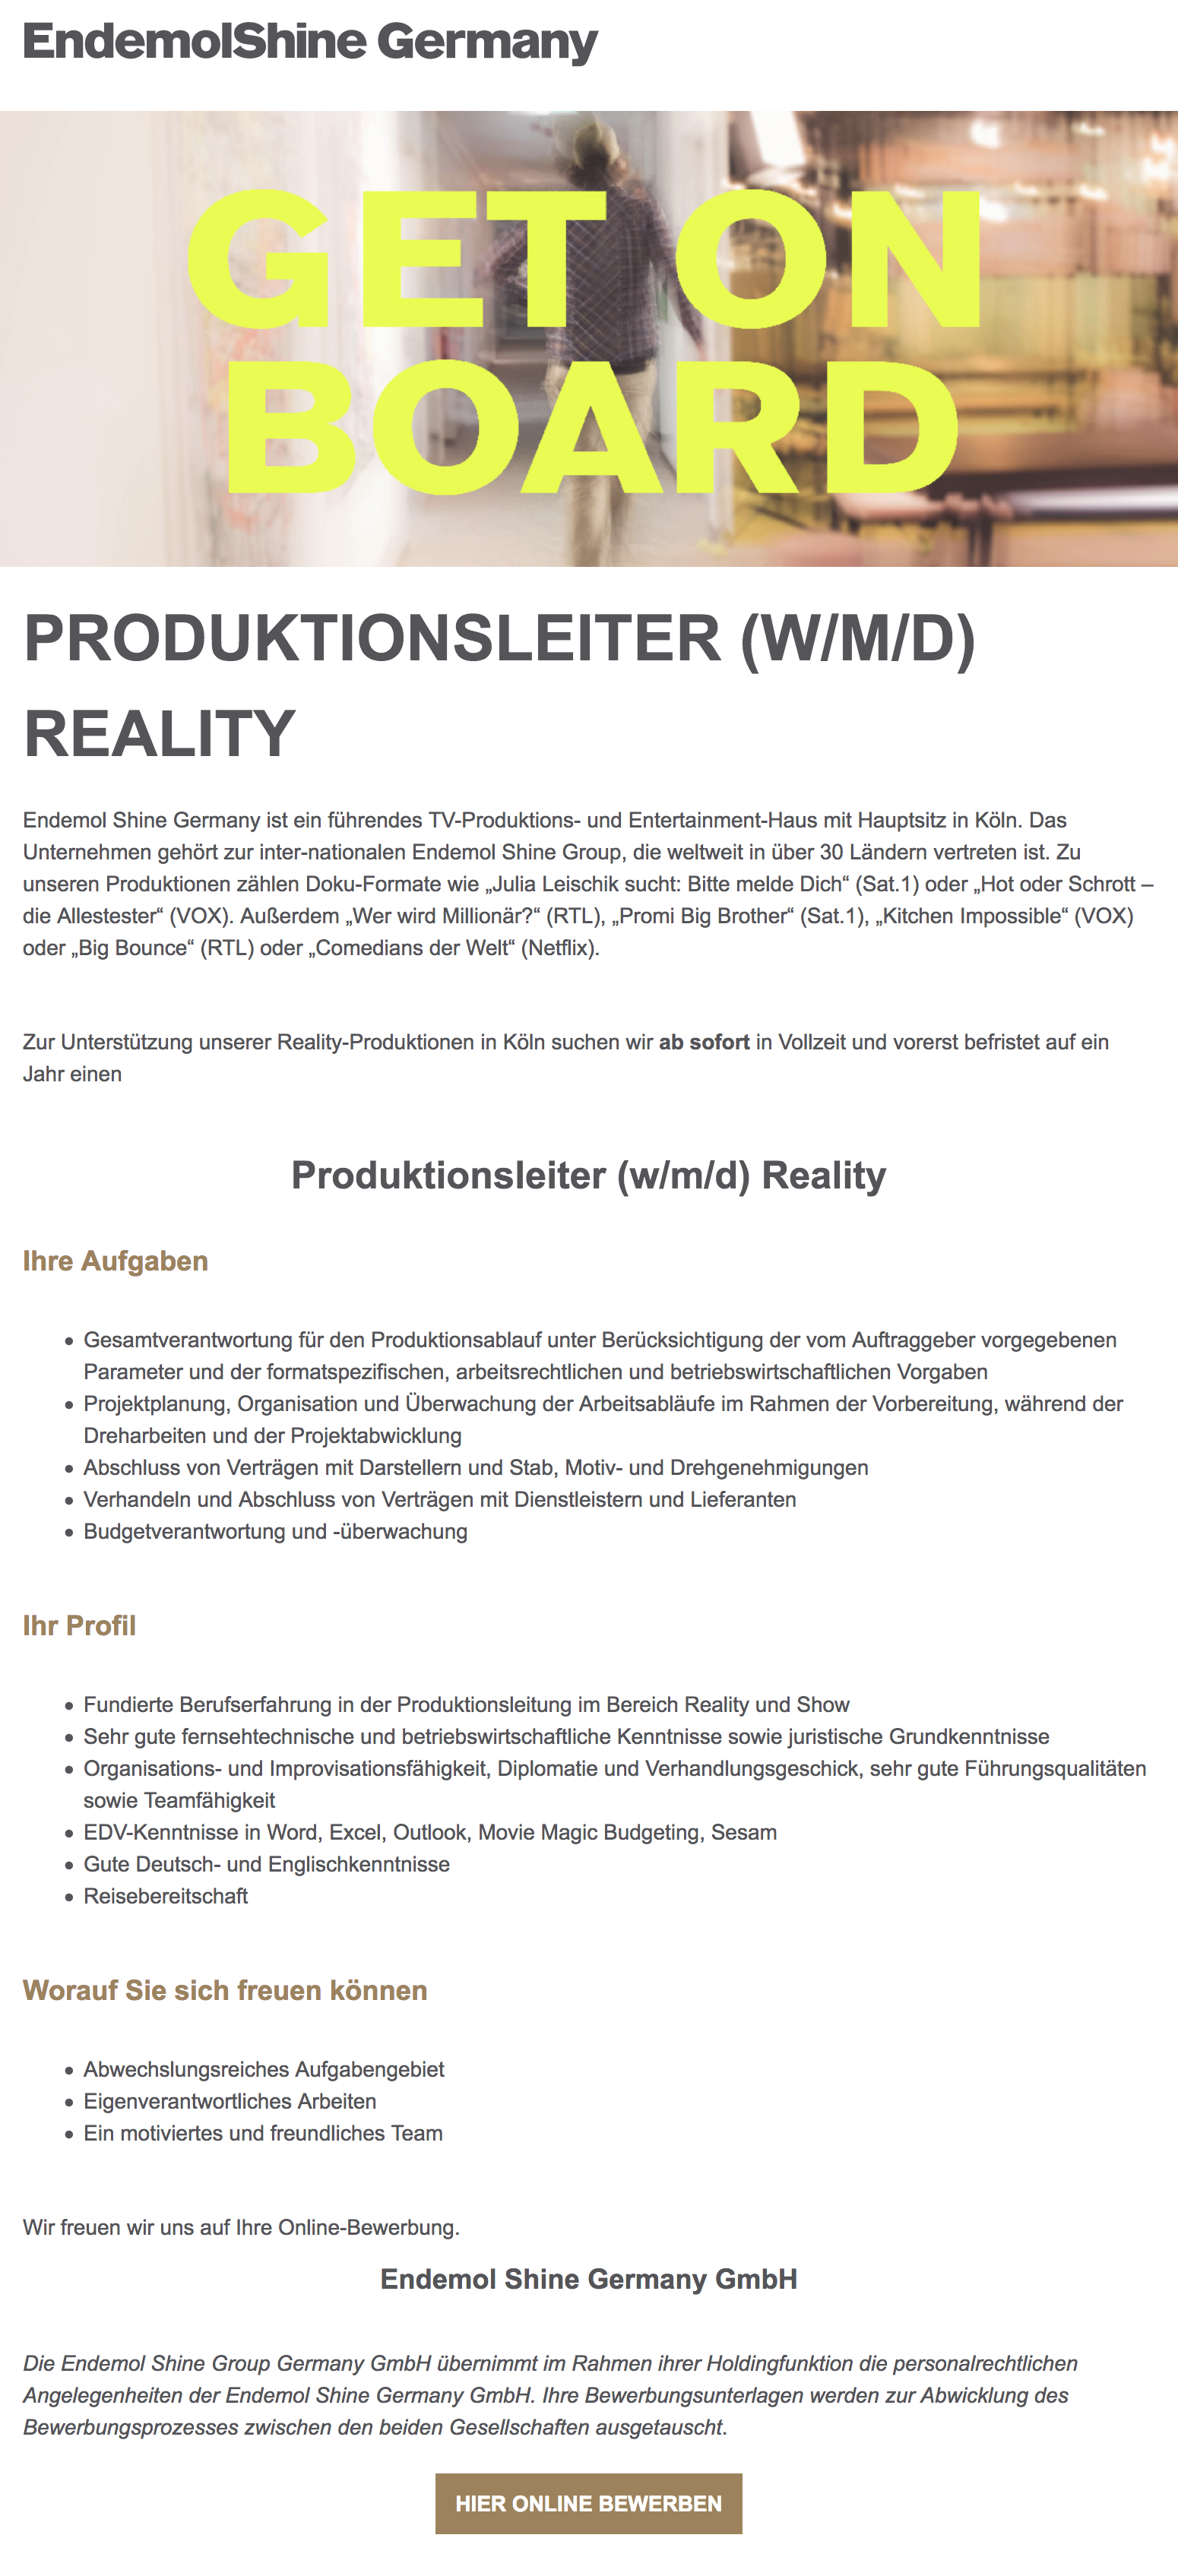 Produktionsleiter (w/m/d) Reality